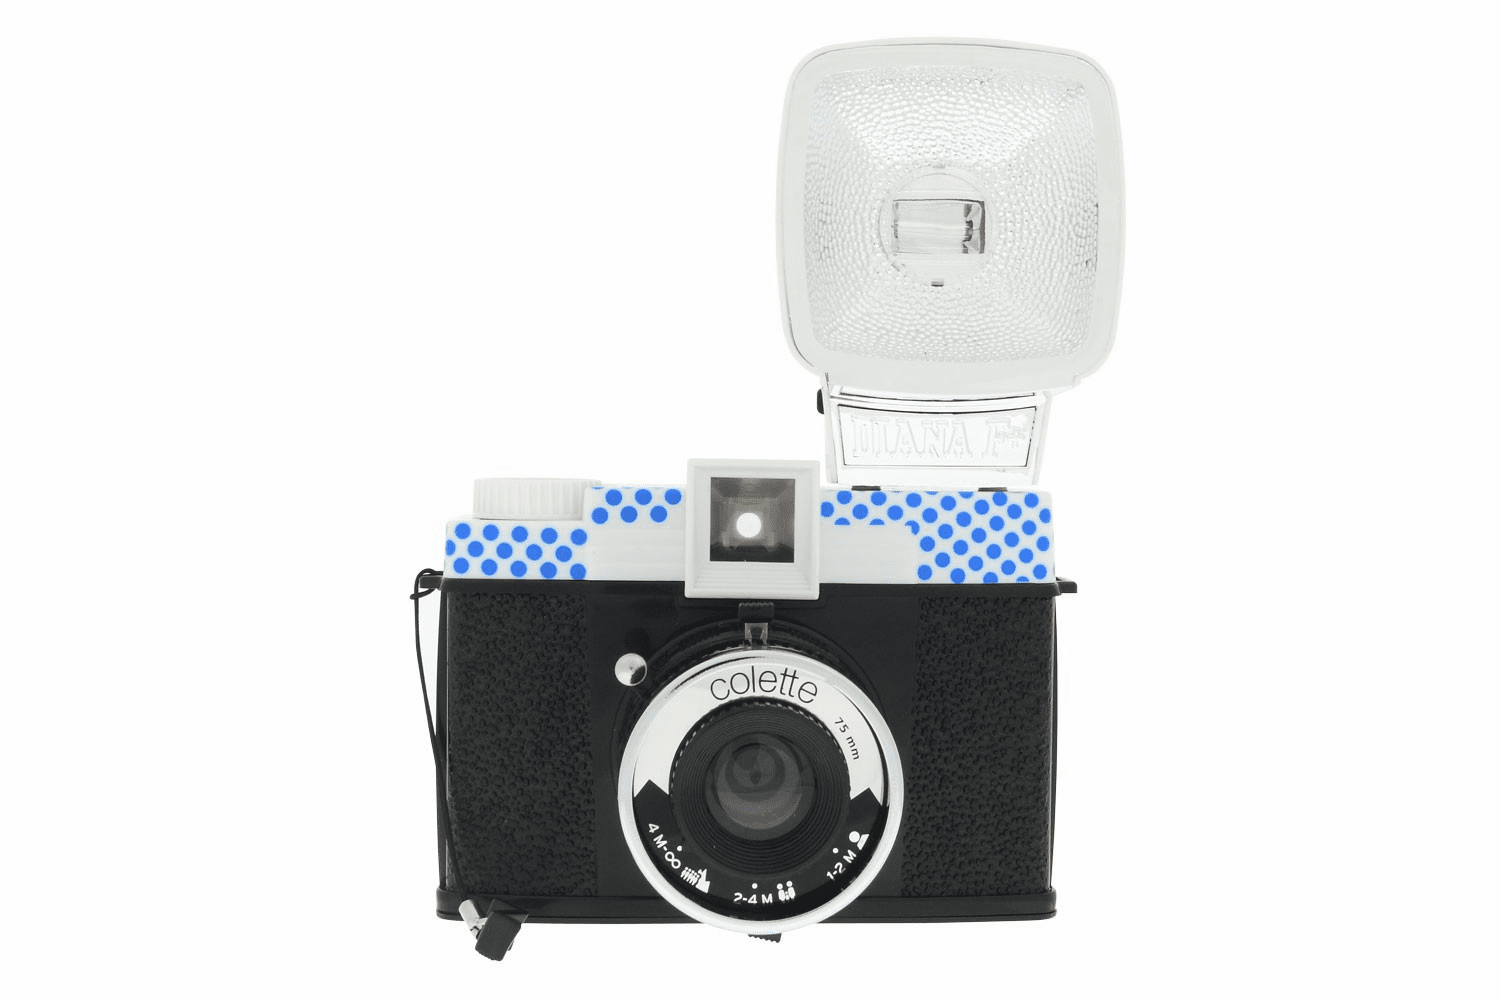 Lomography Special Edition Diana F+ Colette W/Flash